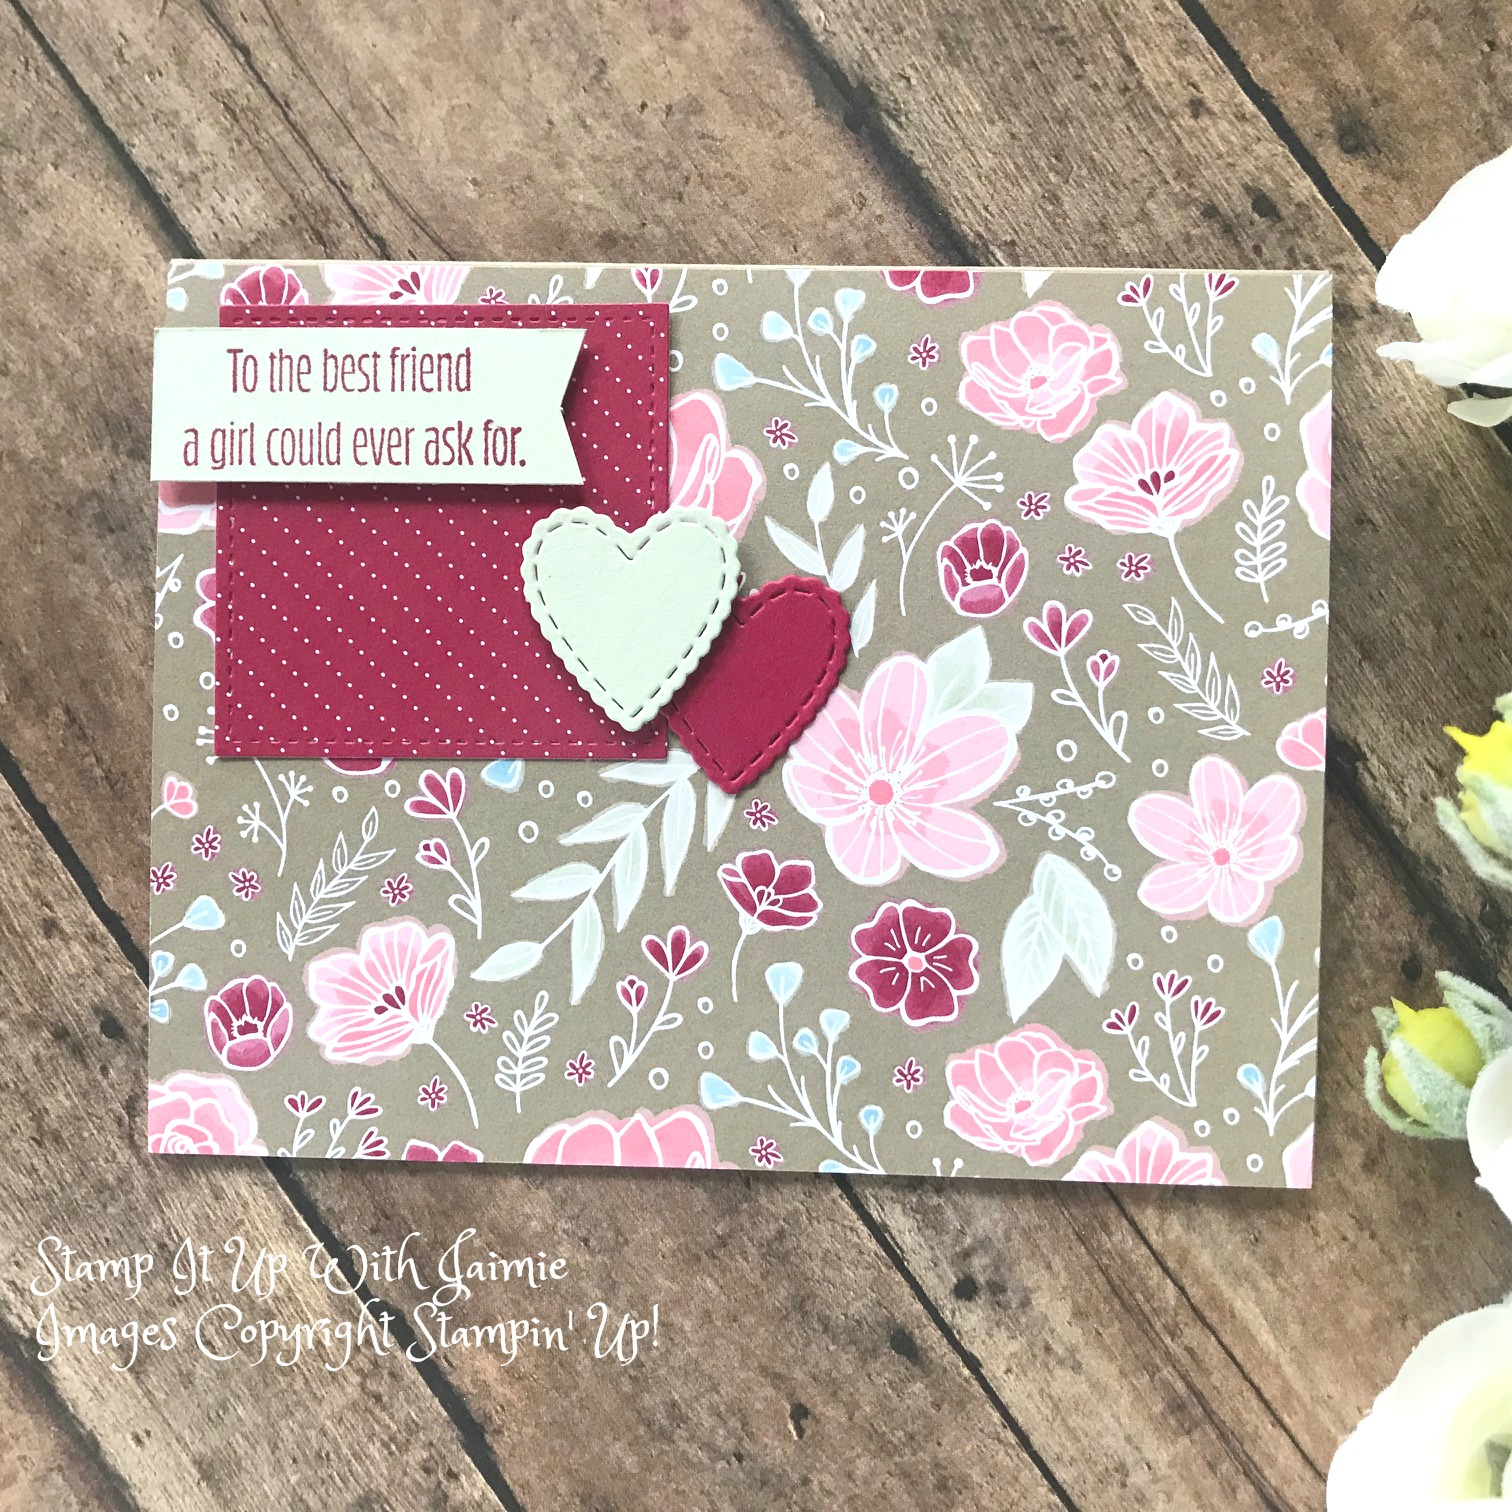 Stampin Up NEW Meant To Be Card Stamp It Up With Jaimie